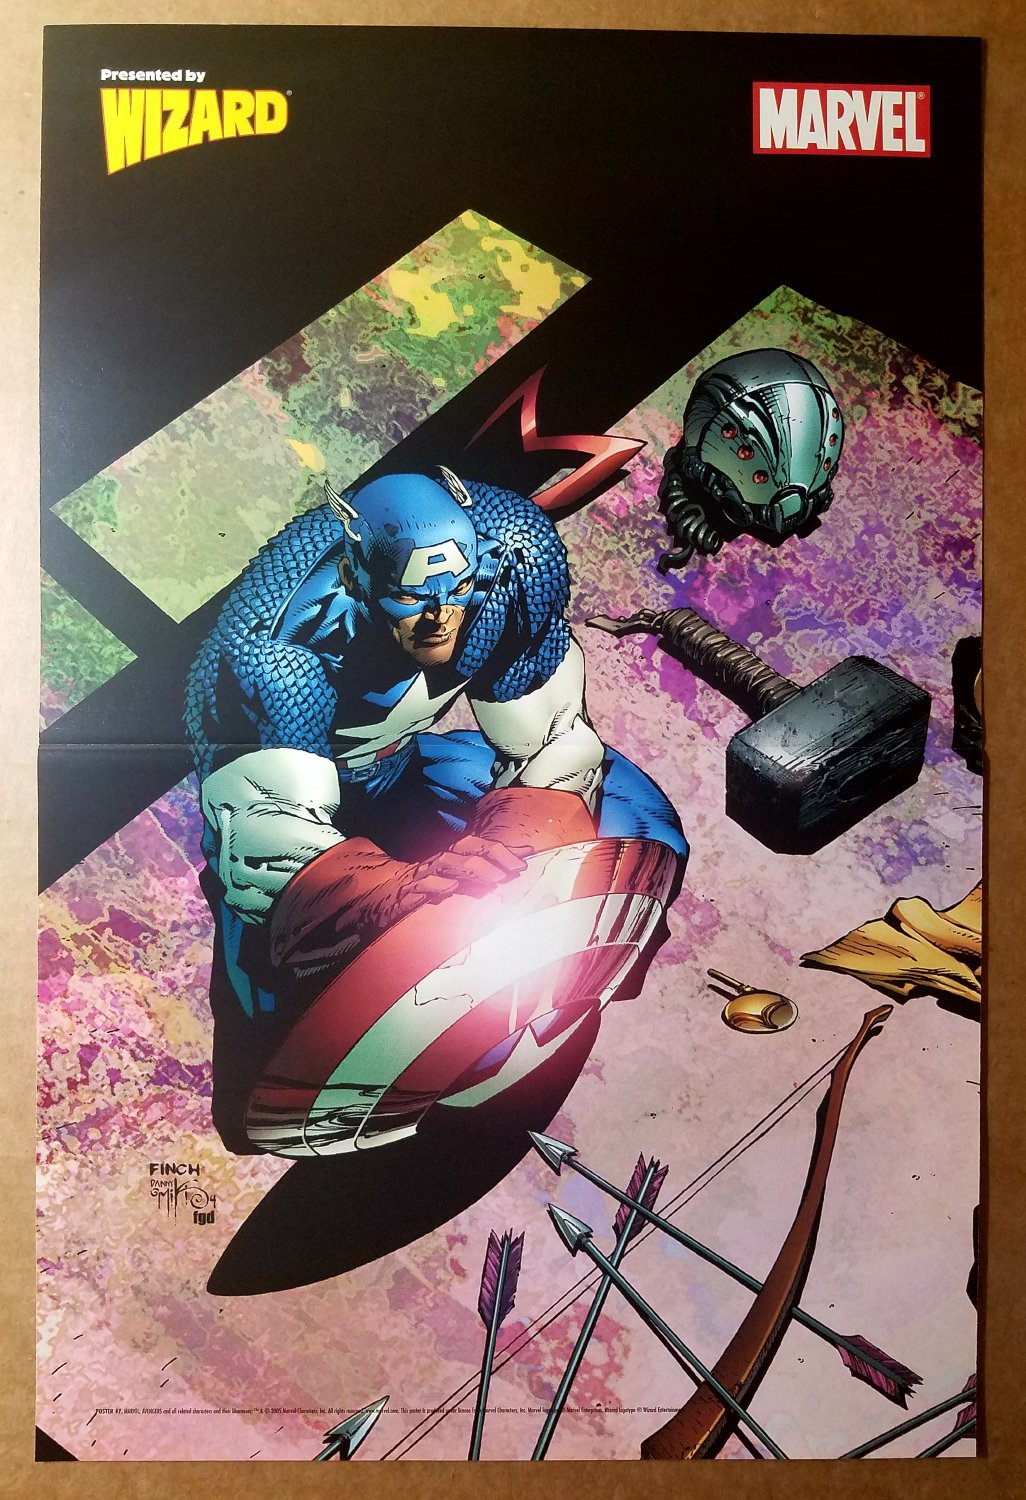 Captain America Thors Hammer Marvel Comic Poster by David Finch